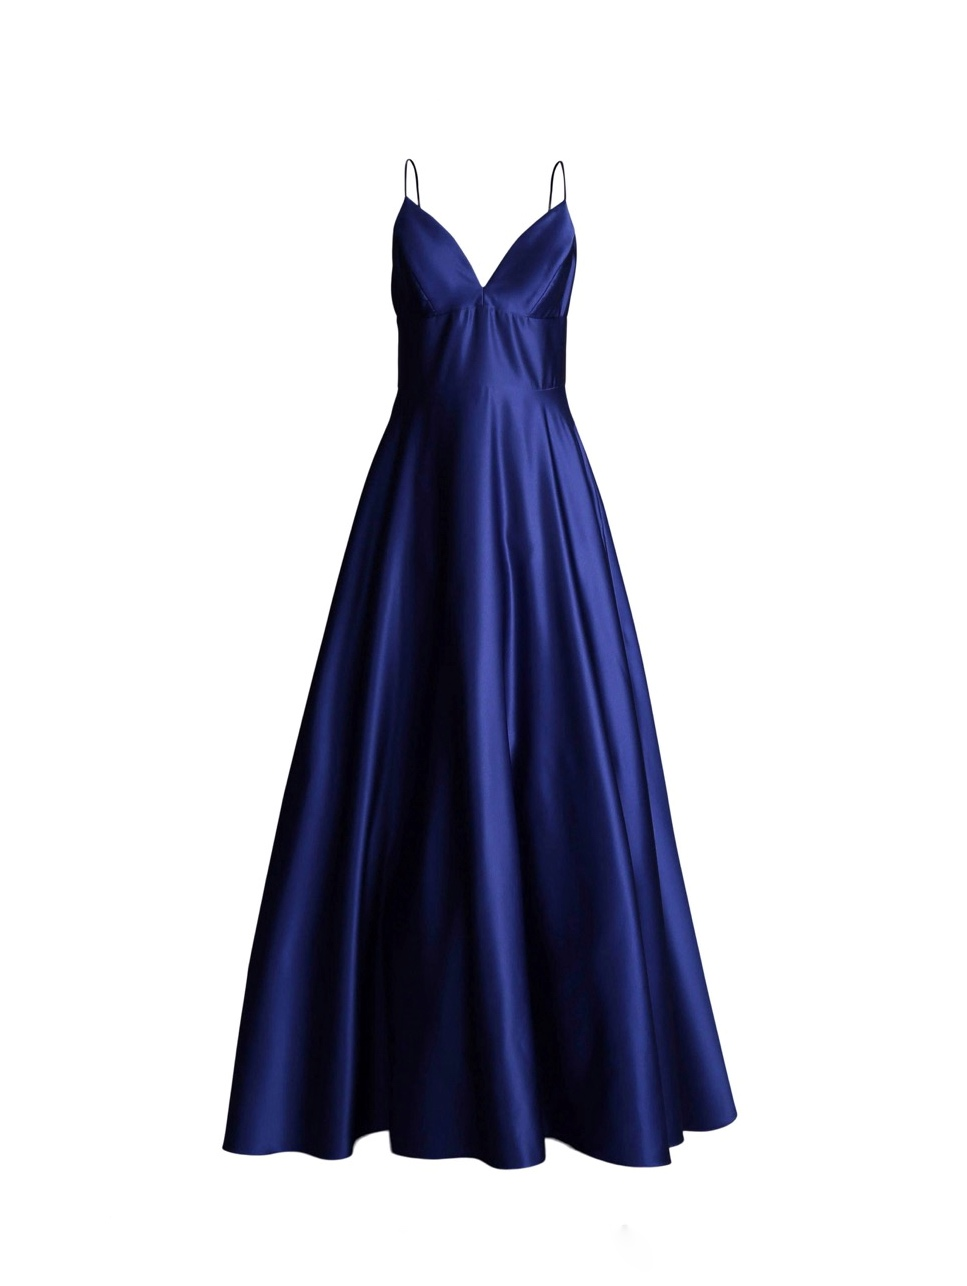 Avery G - Blue Satin Ball Gown